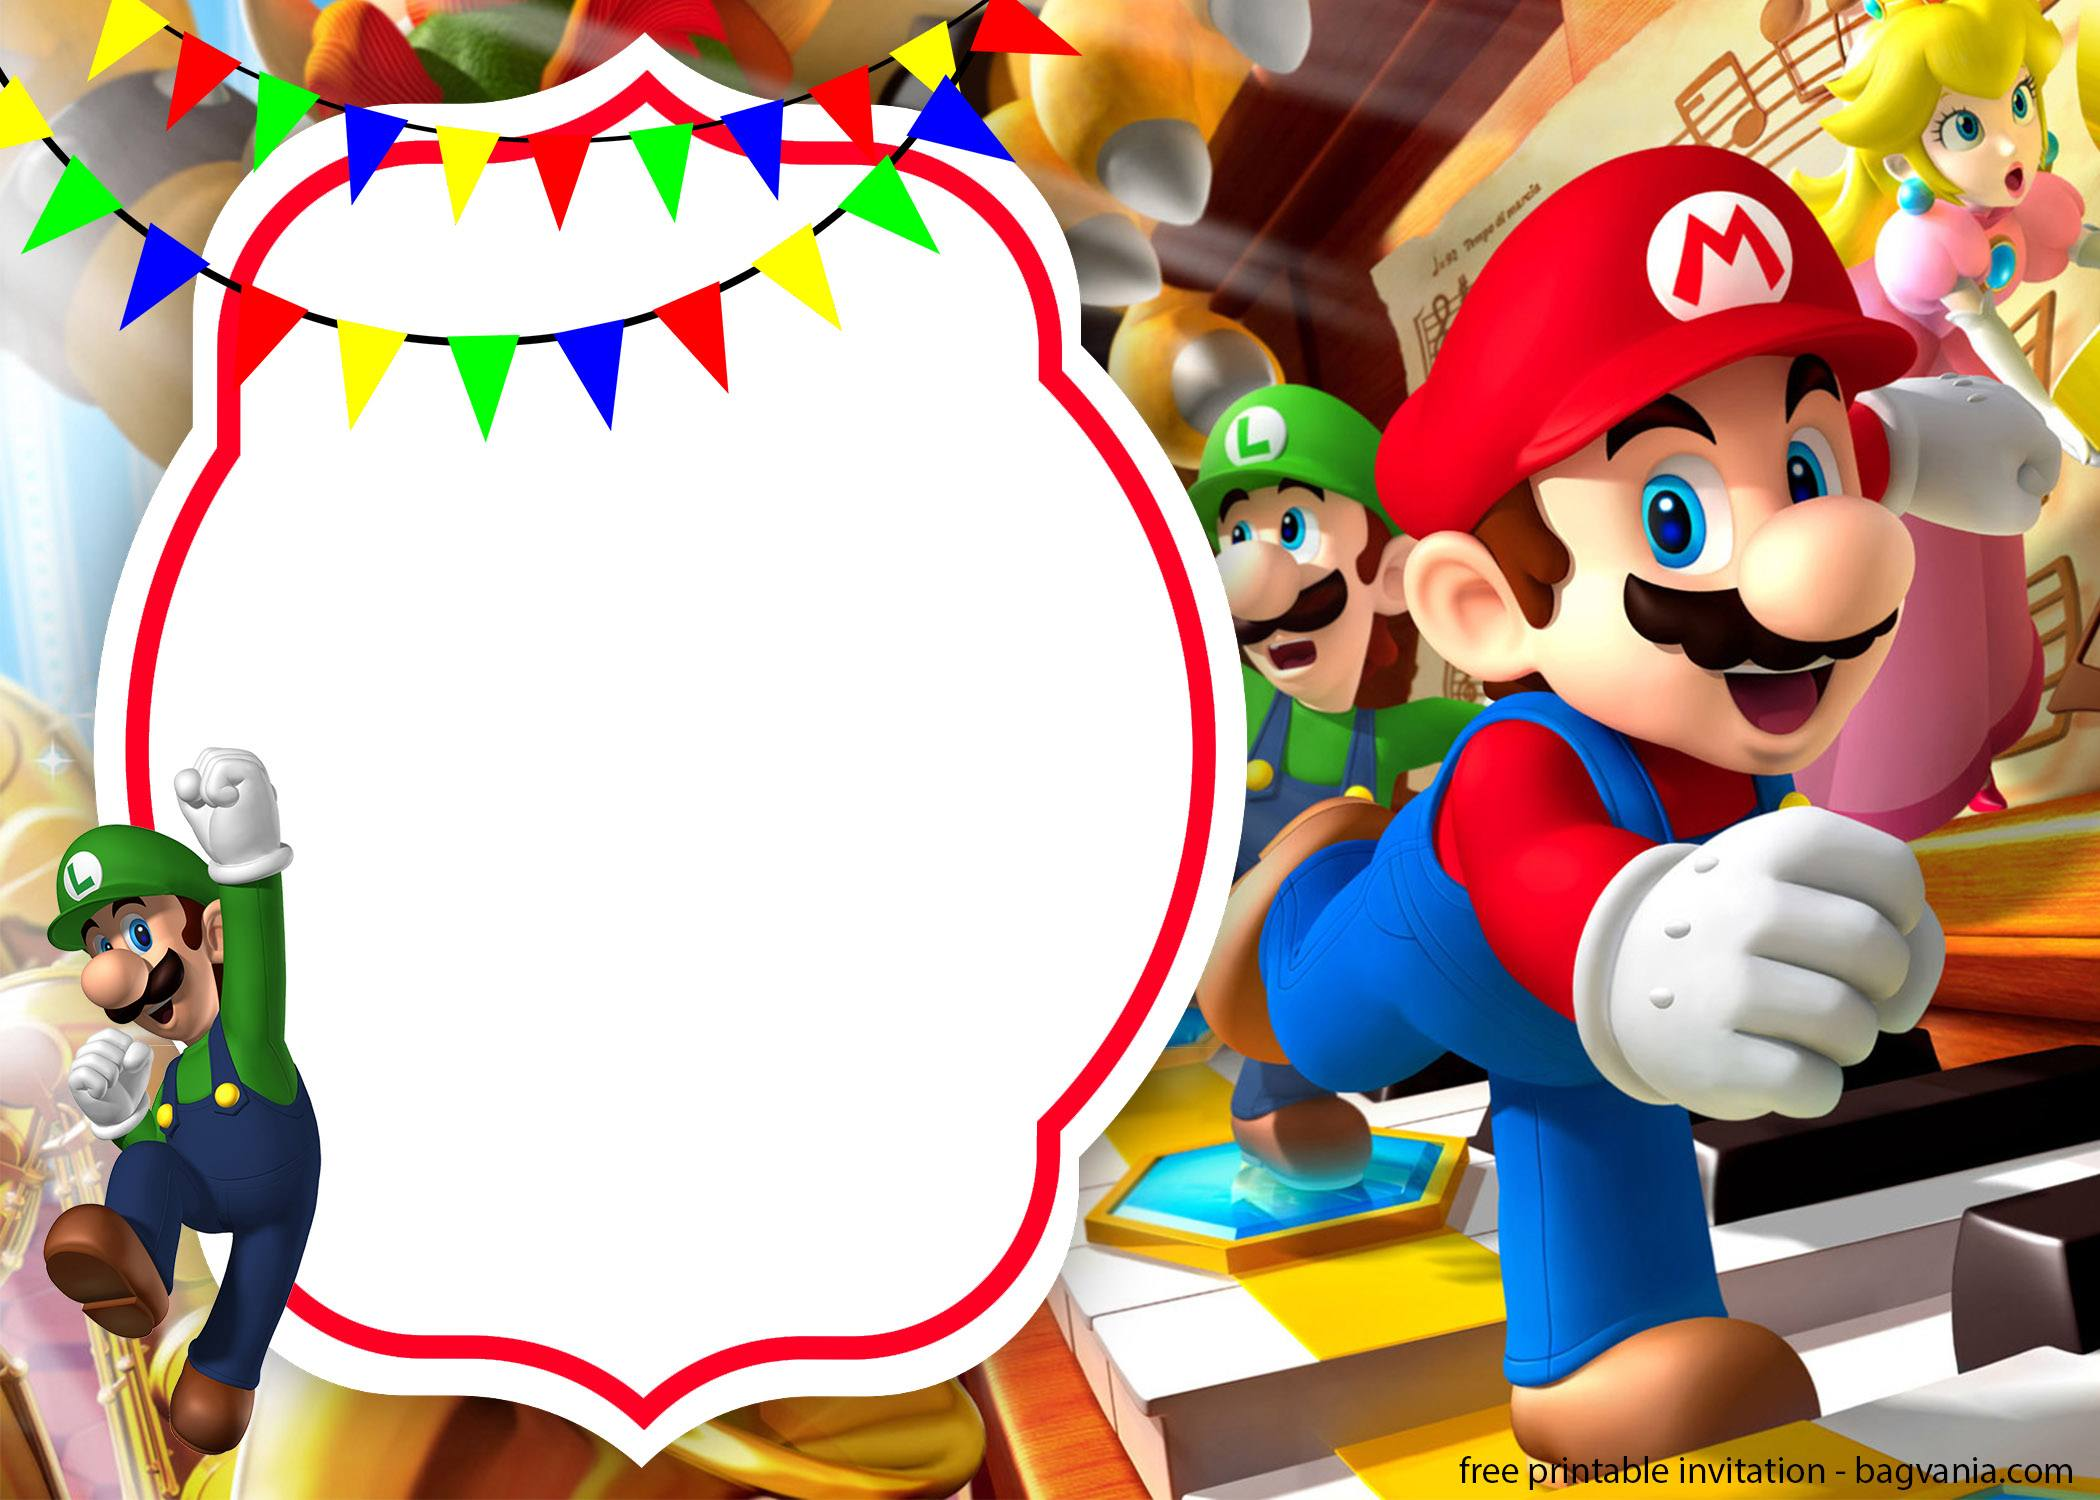 free printable mario invitation